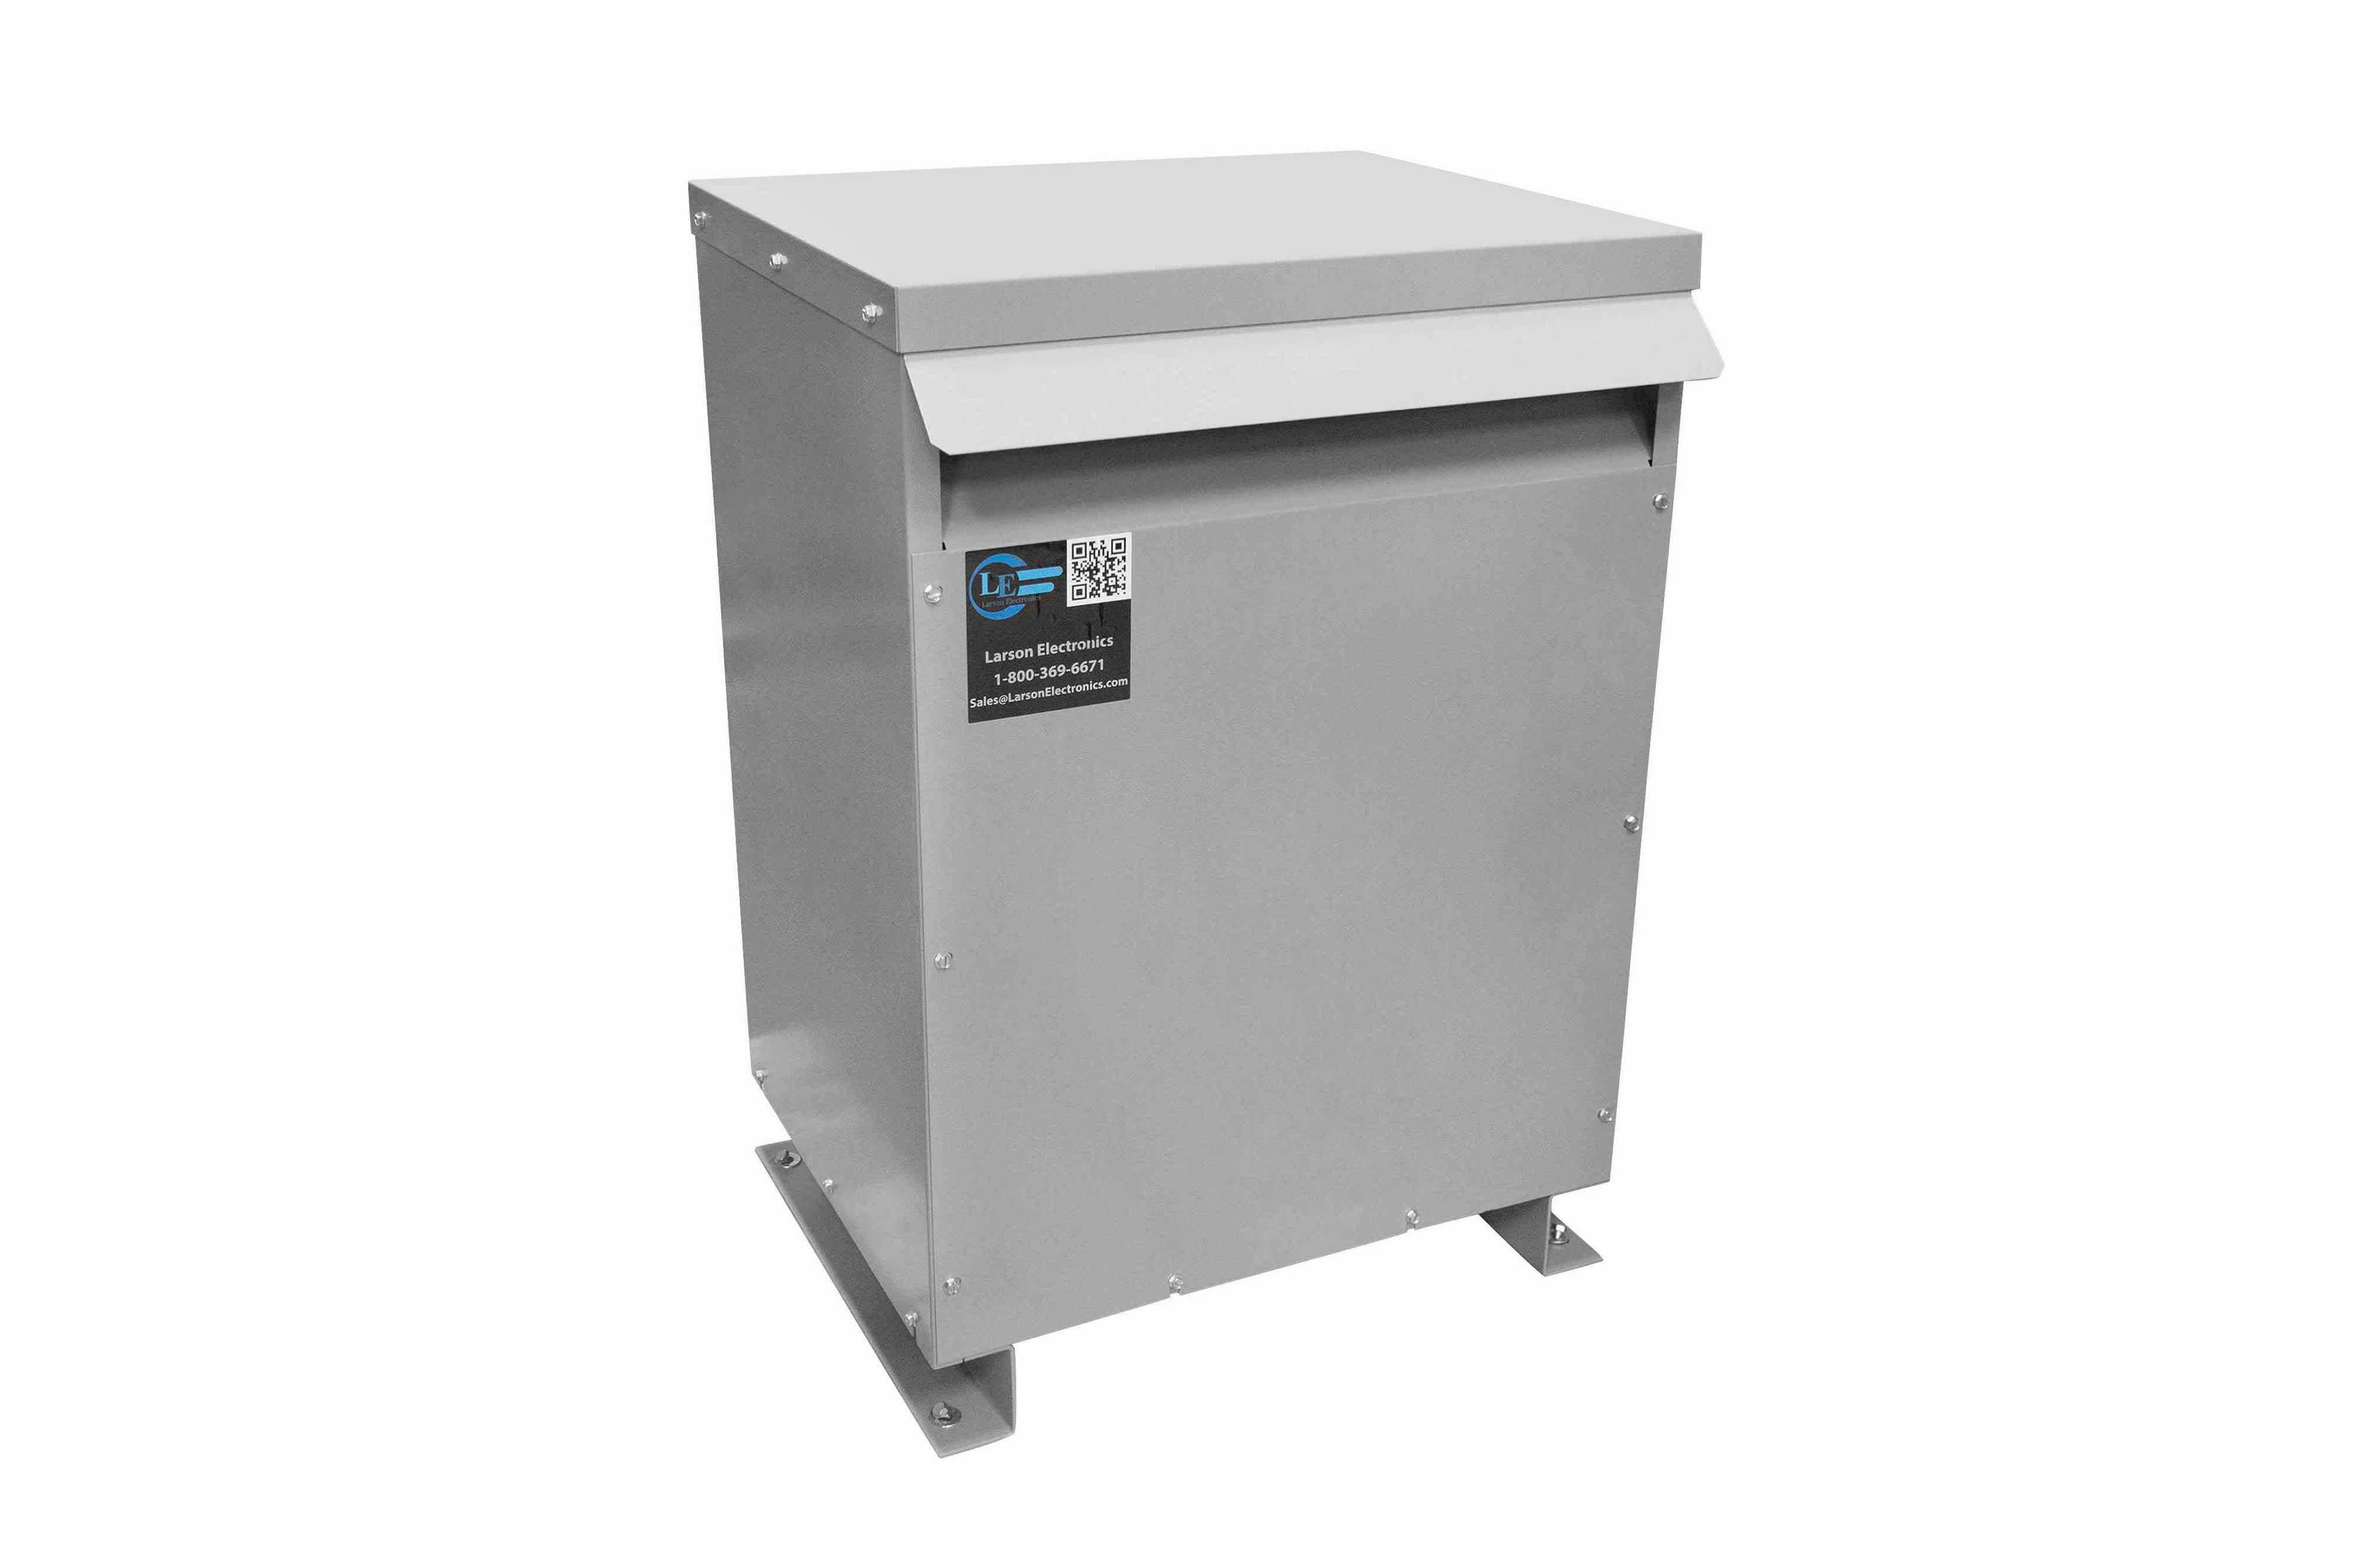 90 kVA 3PH Isolation Transformer, 480V Wye Primary, 480Y/277 Wye-N Secondary, N3R, Ventilated, 60 Hz